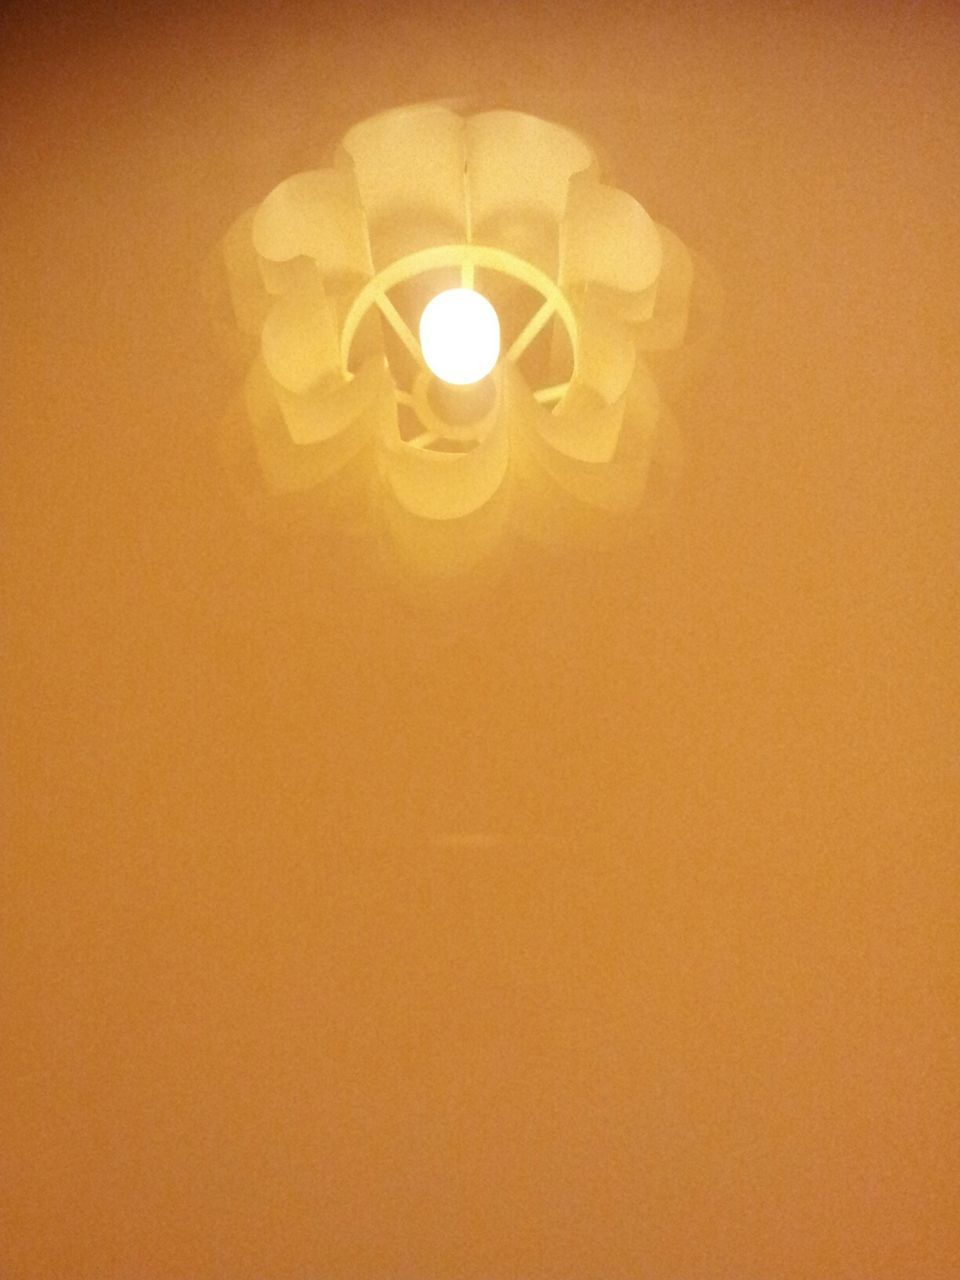 LOW ANGLE VIEW OF ILLUMINATED LIGHT BULBS HANGING AGAINST WALL